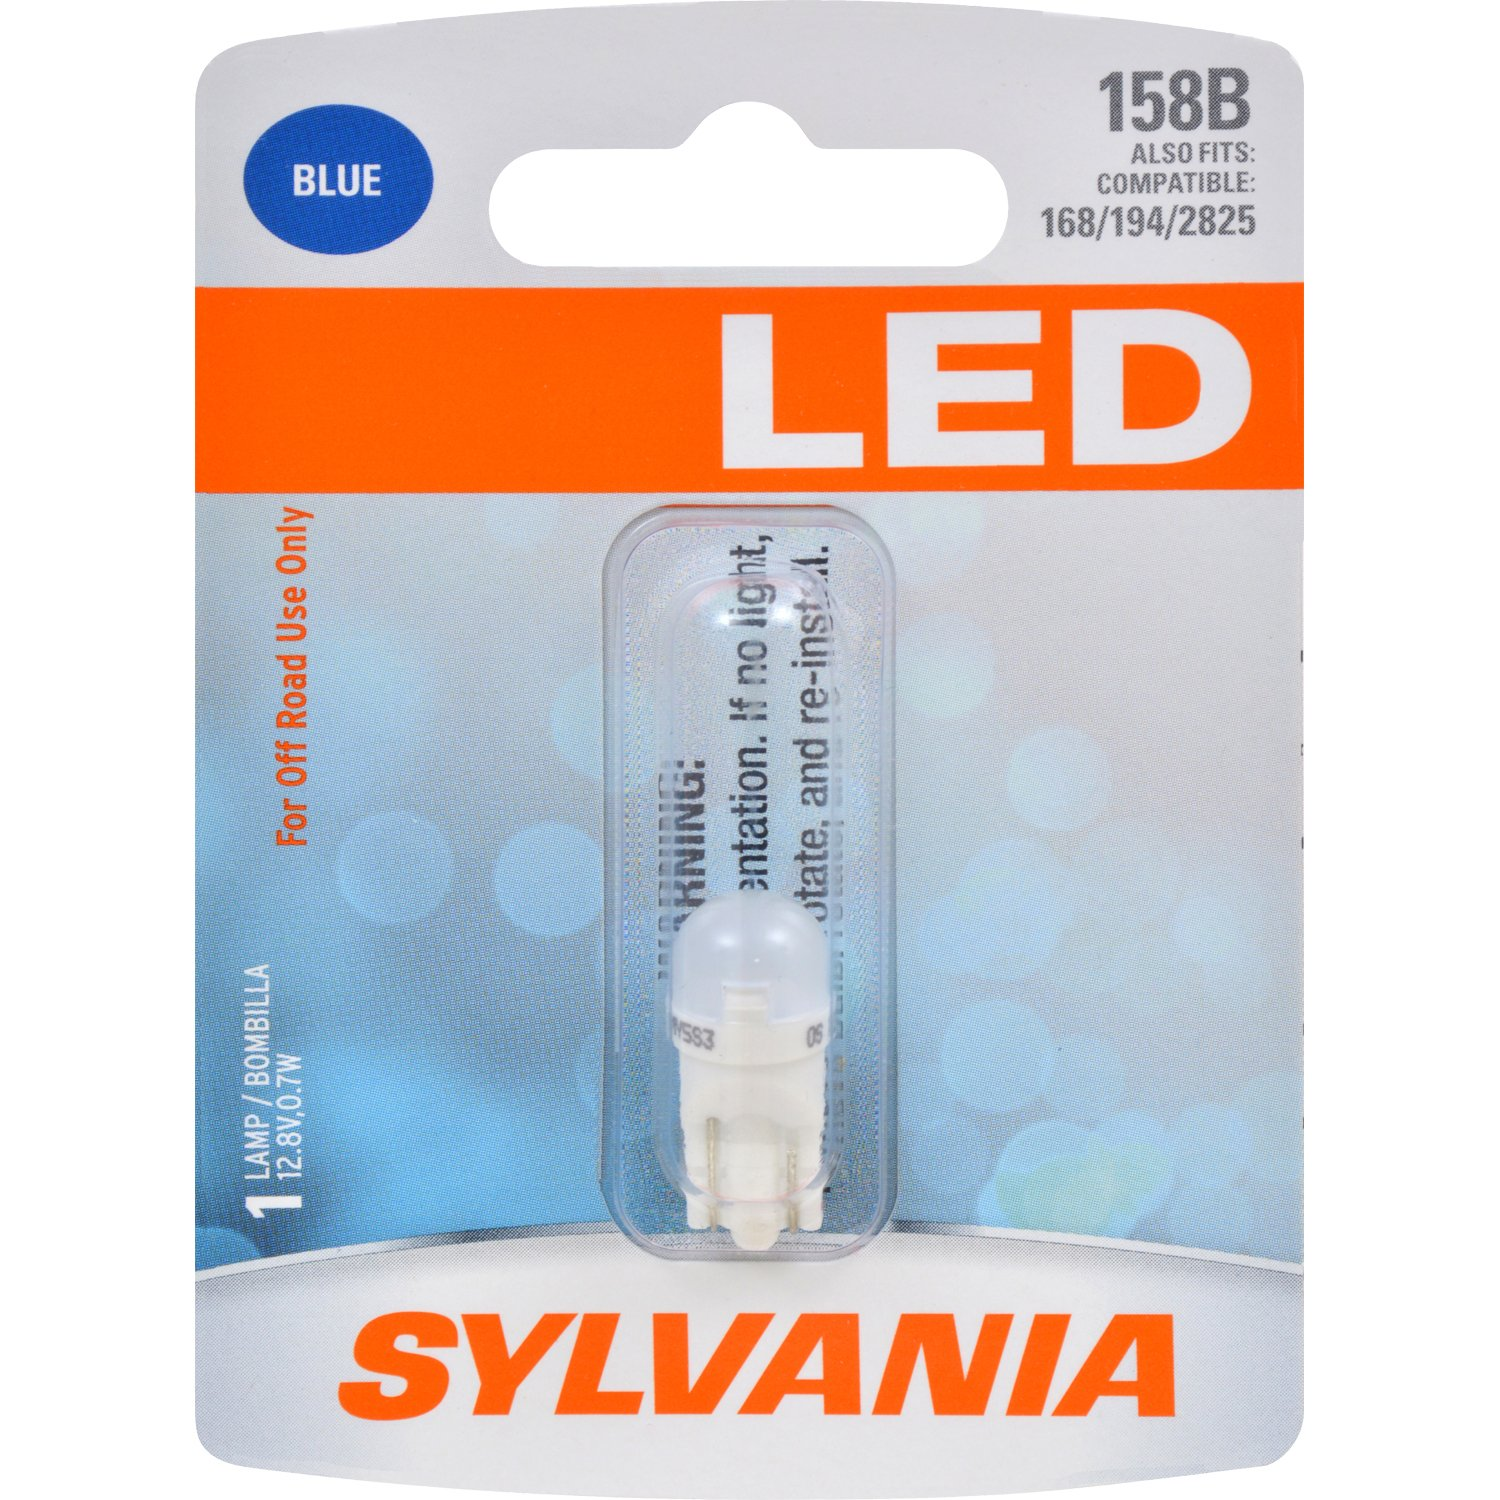 Amazon.com: SYLVANIA 158 T10 W5W Blue LED Bulb, (Contains 1 Bulb): Automotive